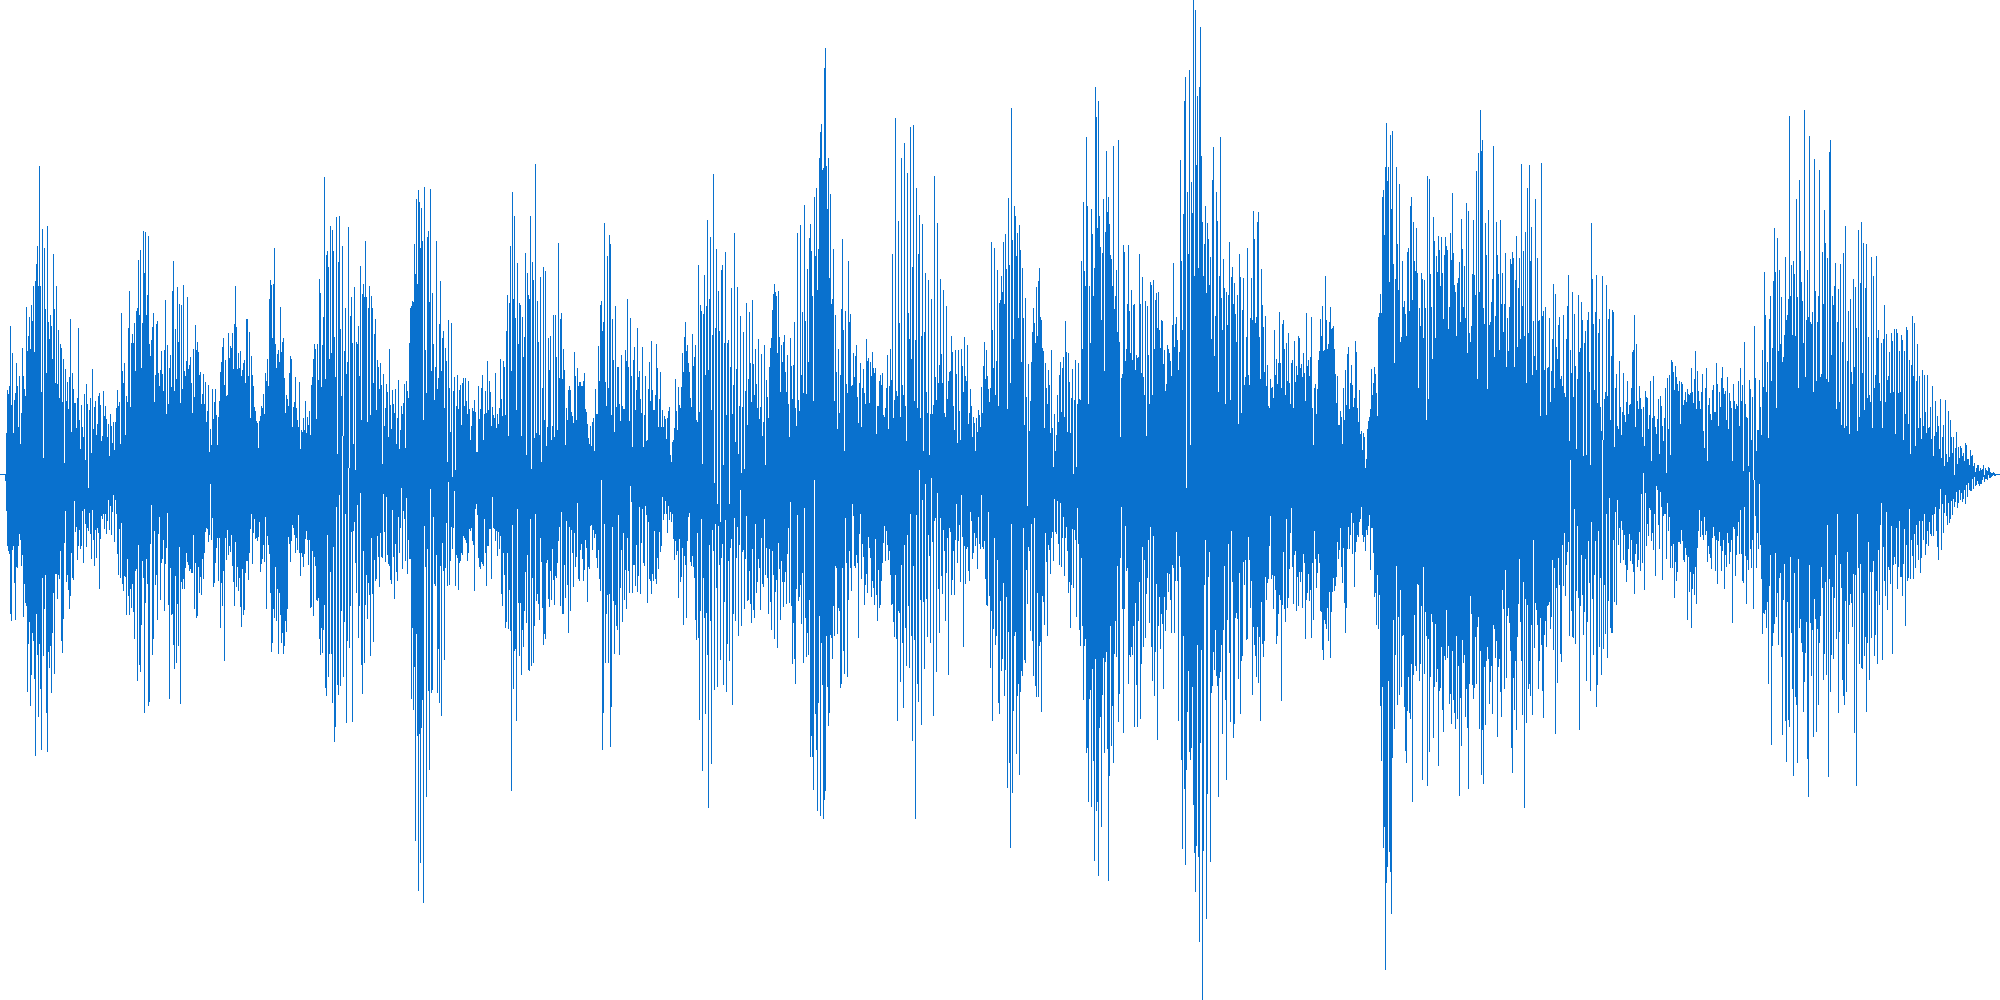 Generate visual (waveform) from MP3/WAV file in Windows 2008.